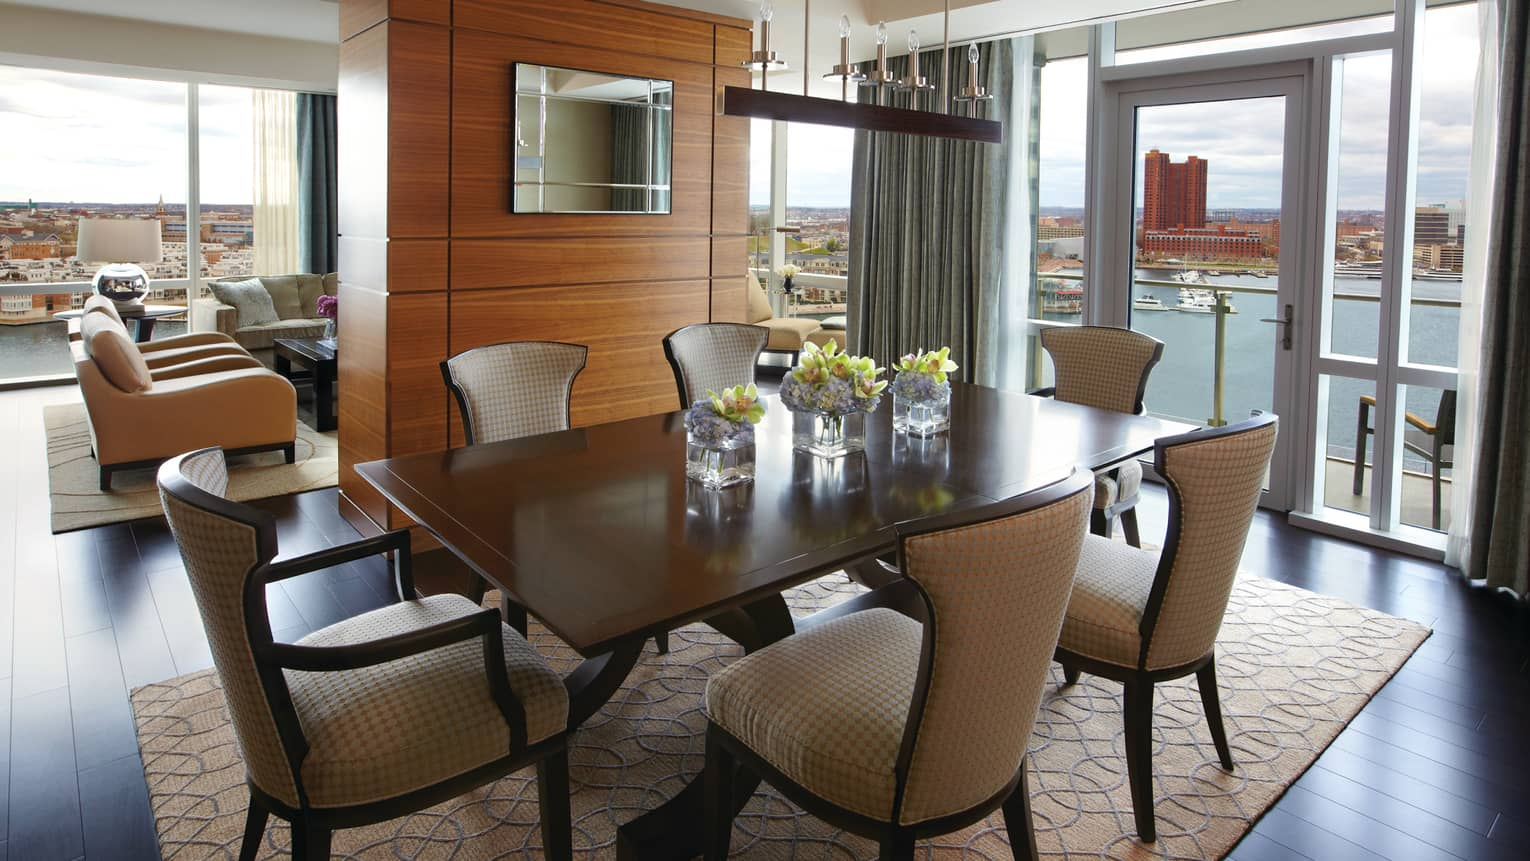 Serene Suite dining table for six, adjoining living room, glass walls with harbour view